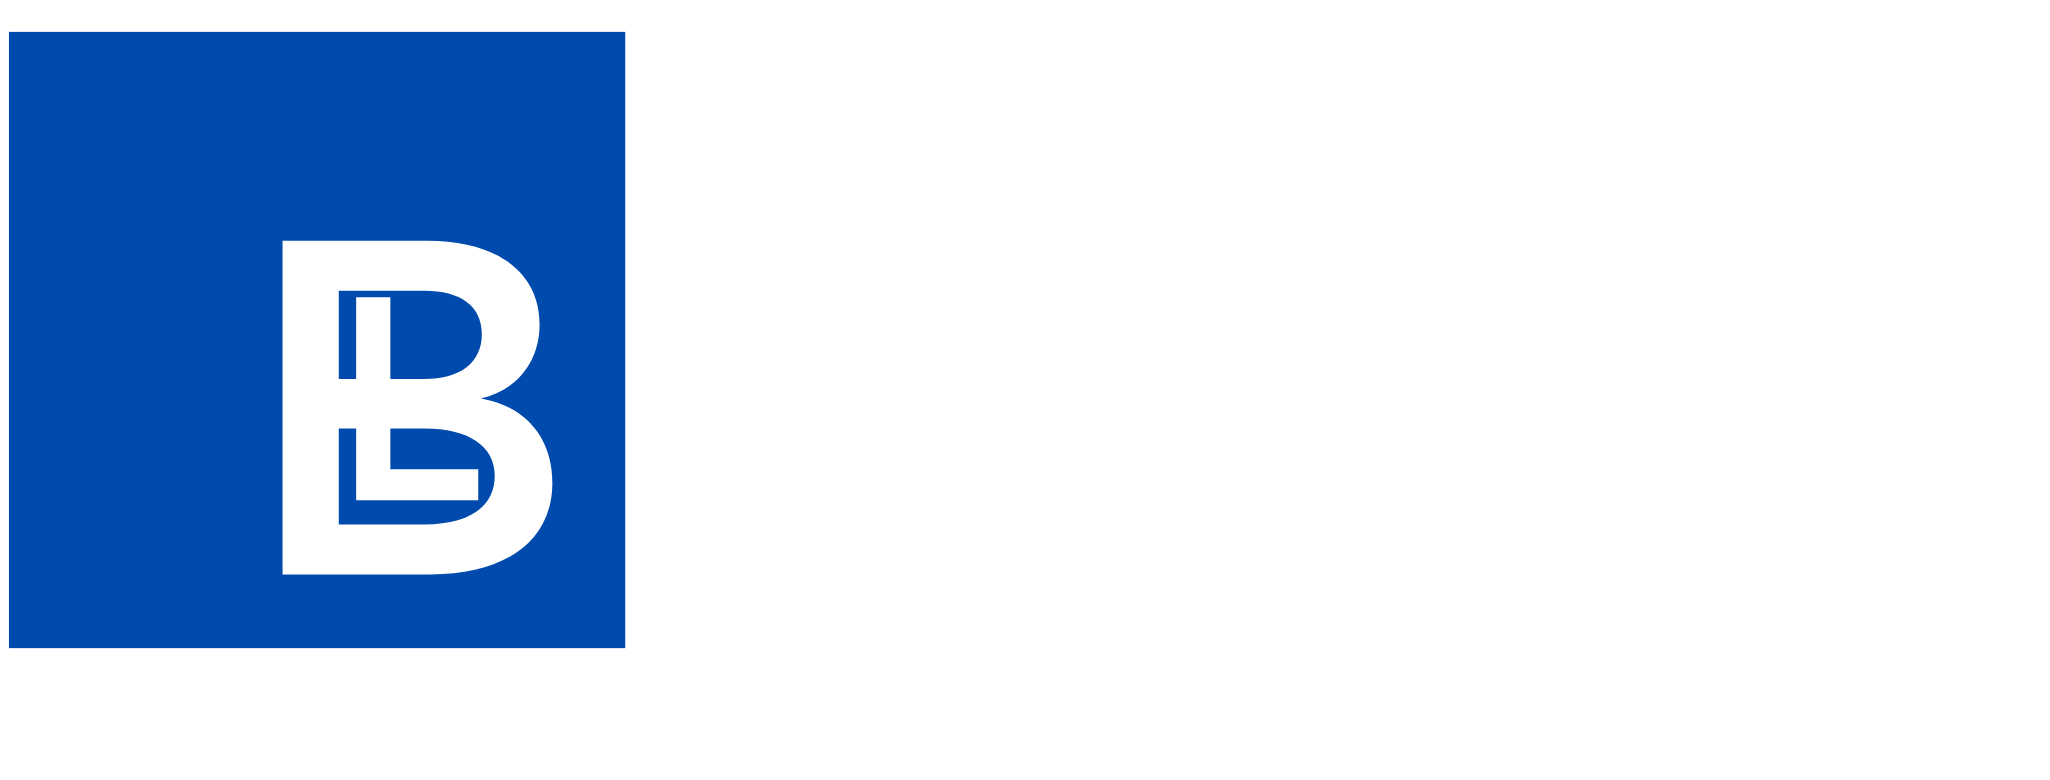 Butlers Criminal Lawyers